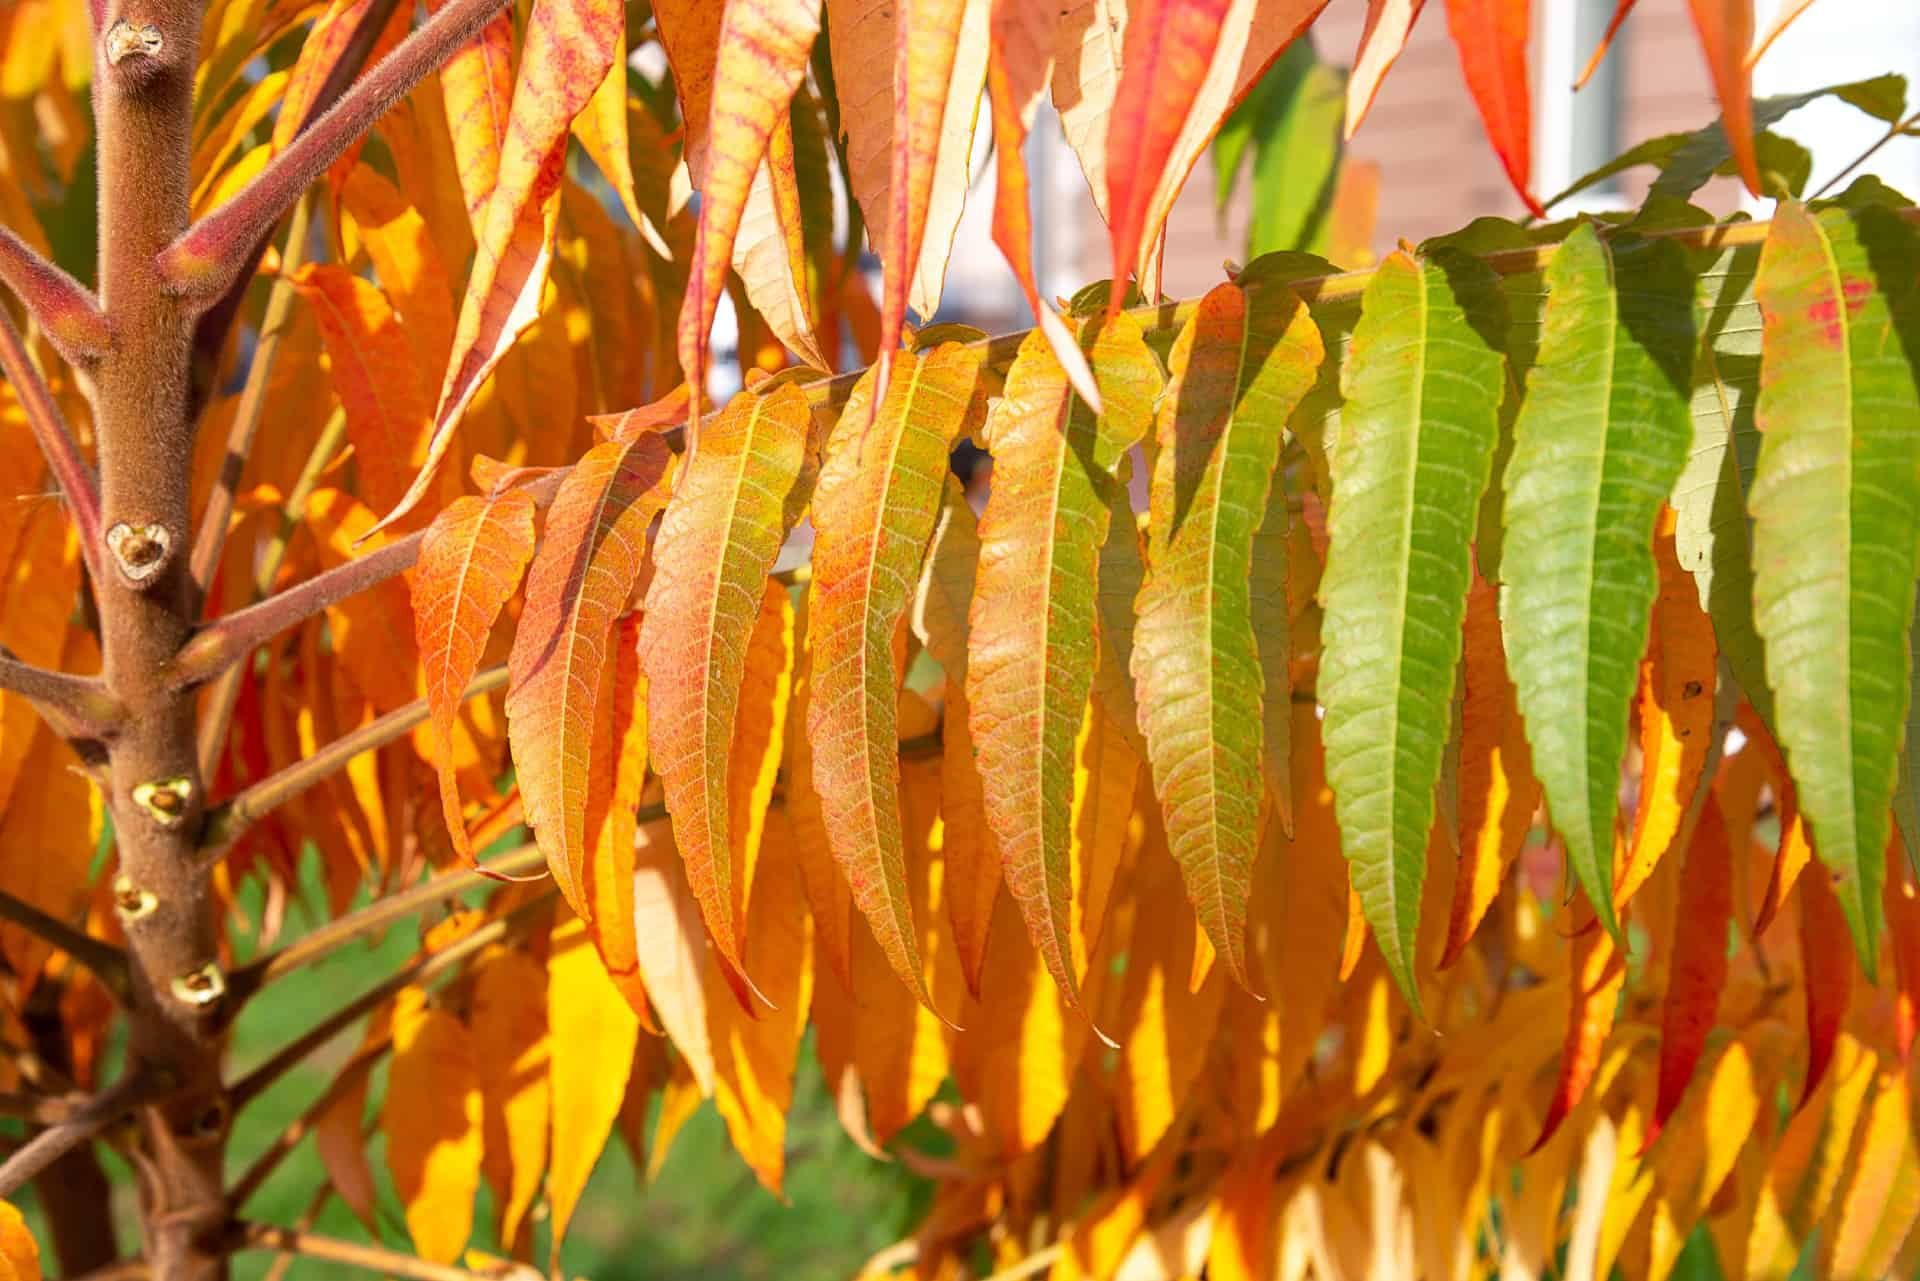 The staghorn sumac is also called the vinegar sumac.